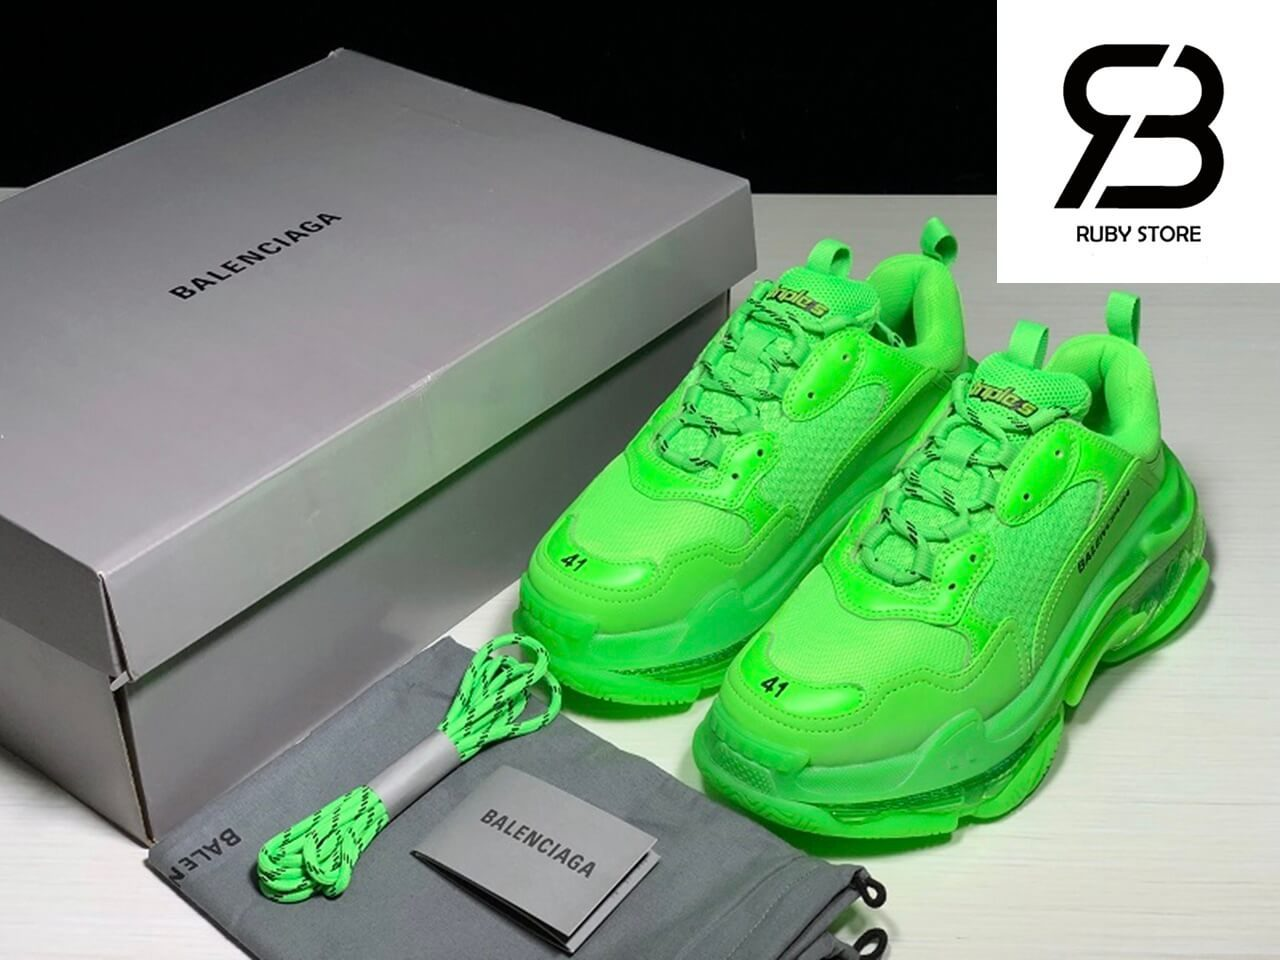 giày balenciaga triple s clear sole green replica 1:1 siêu cấp